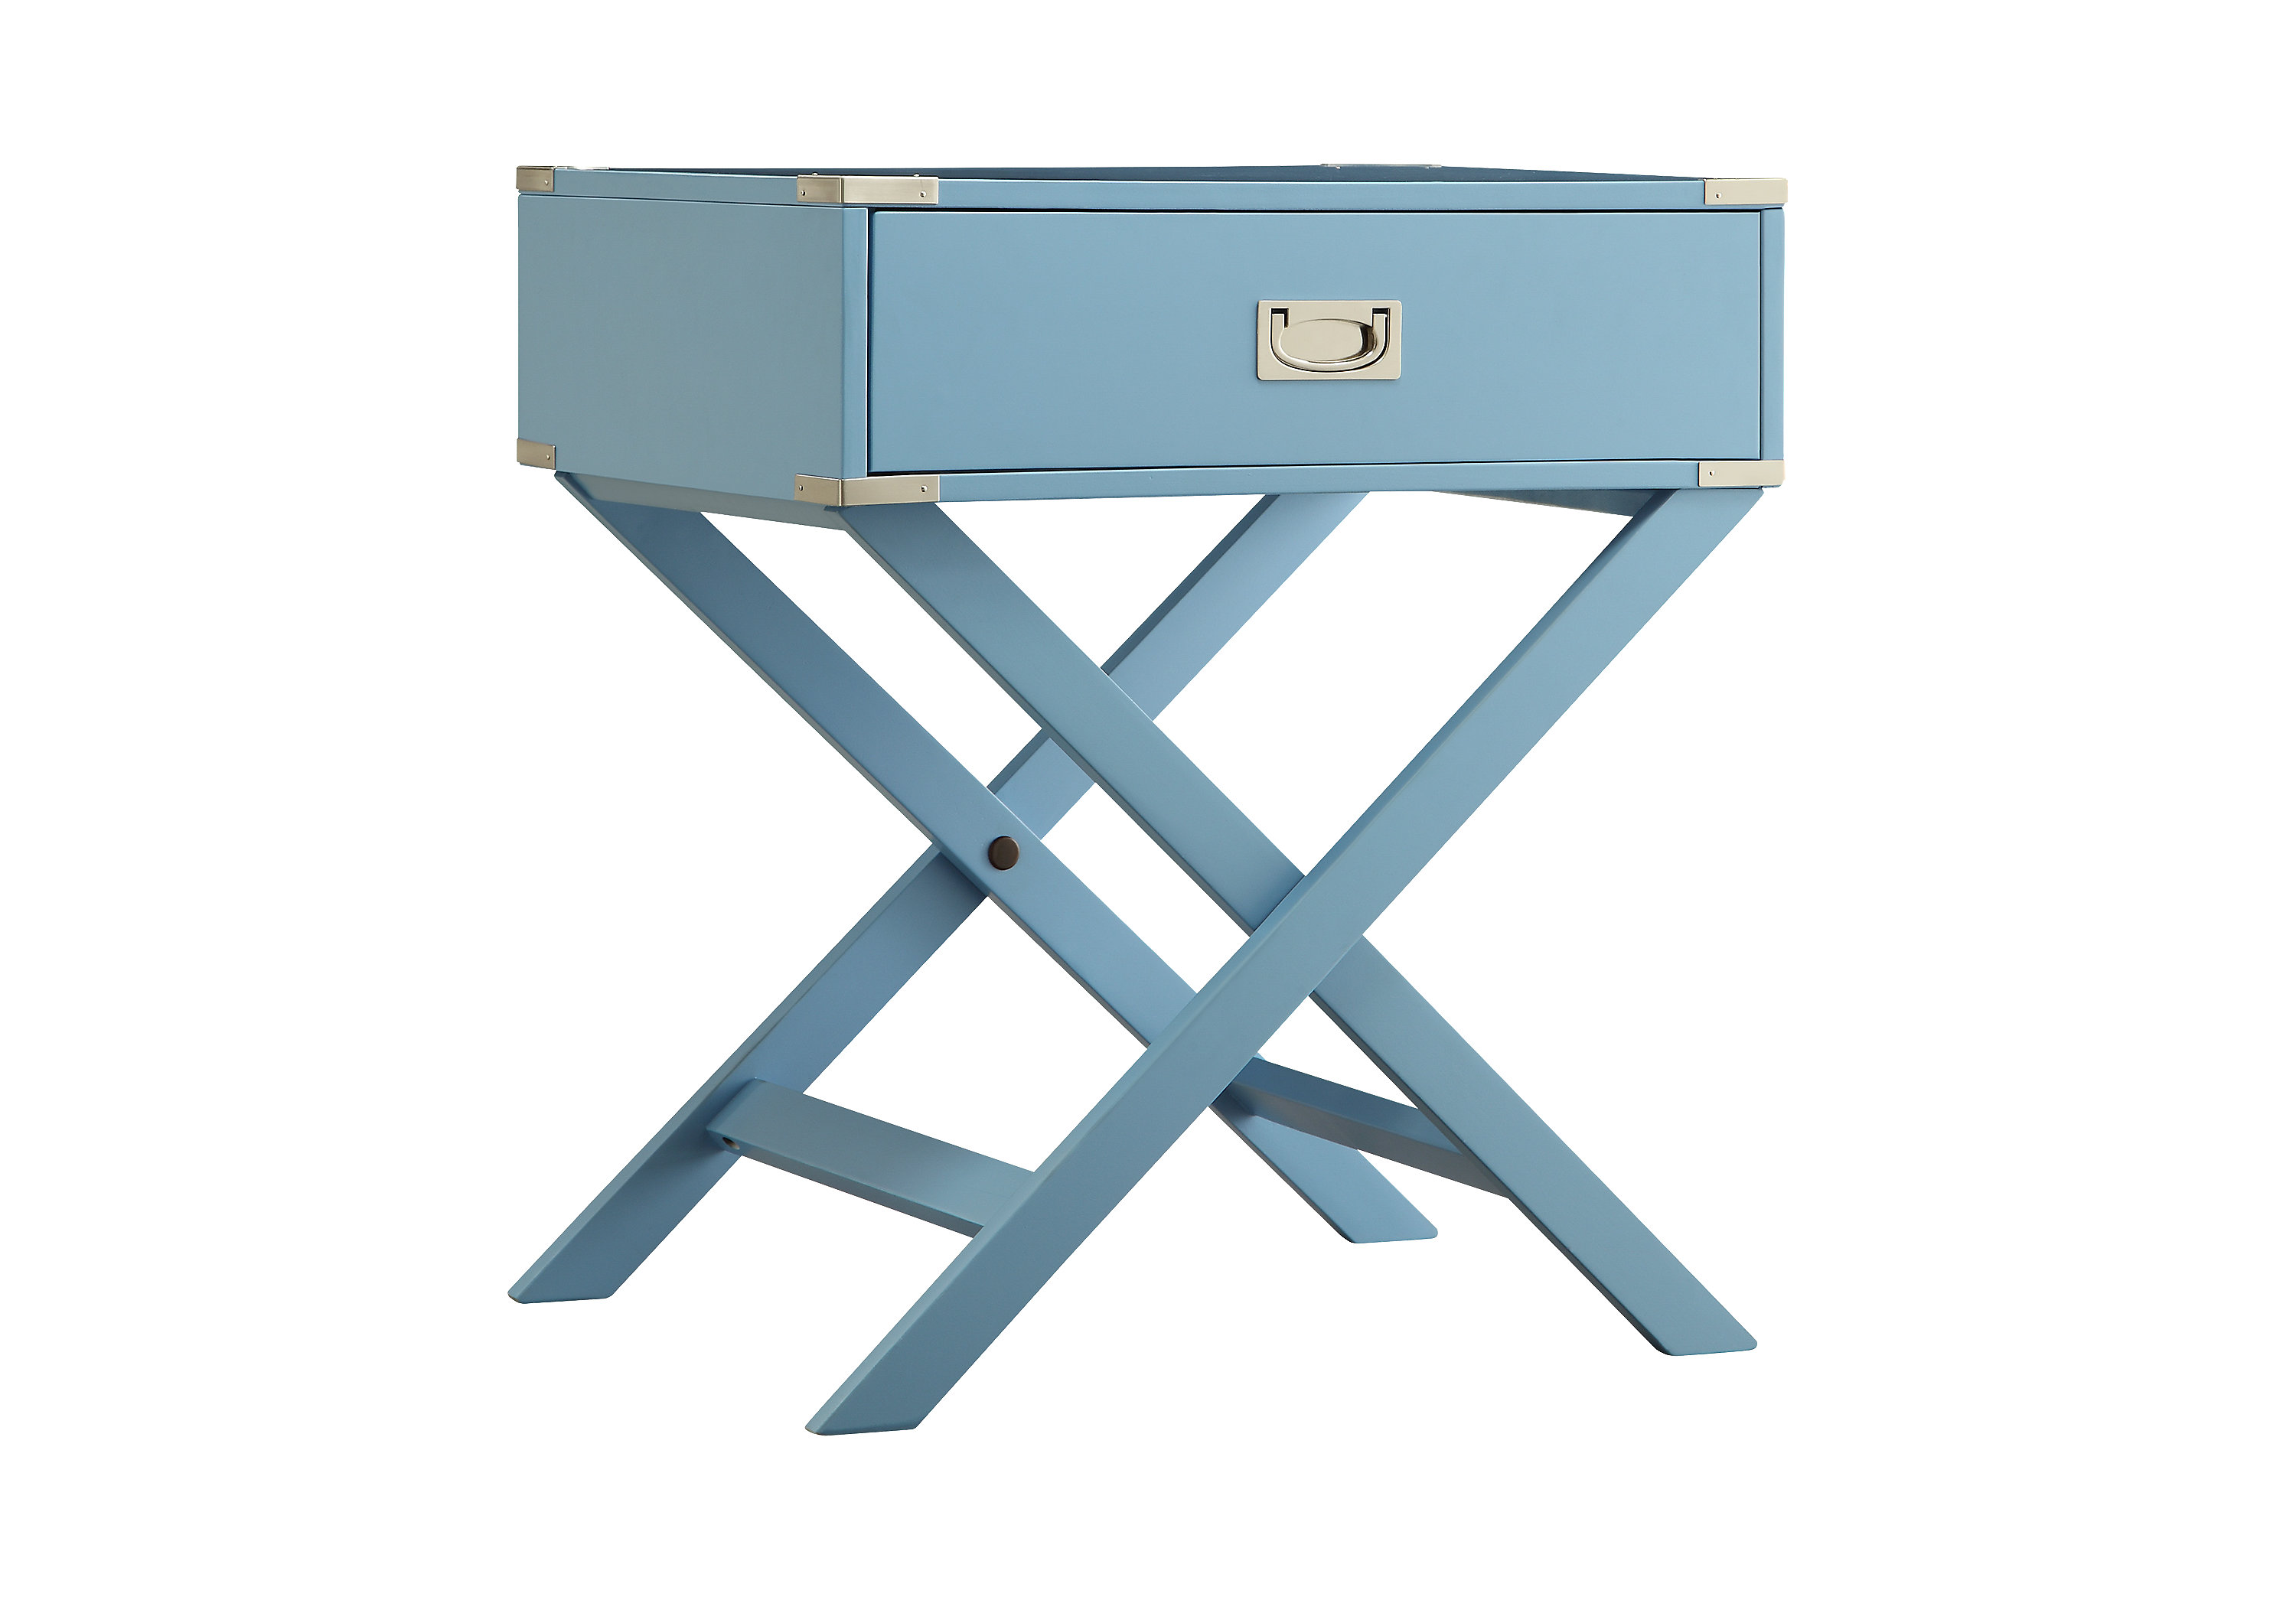 bowen blue accent table tables colors teal roll over zoom reclaimed wood kitchen laminated tablecloth clear plastic and white umbrella pendant lighting folding nic drop leaf